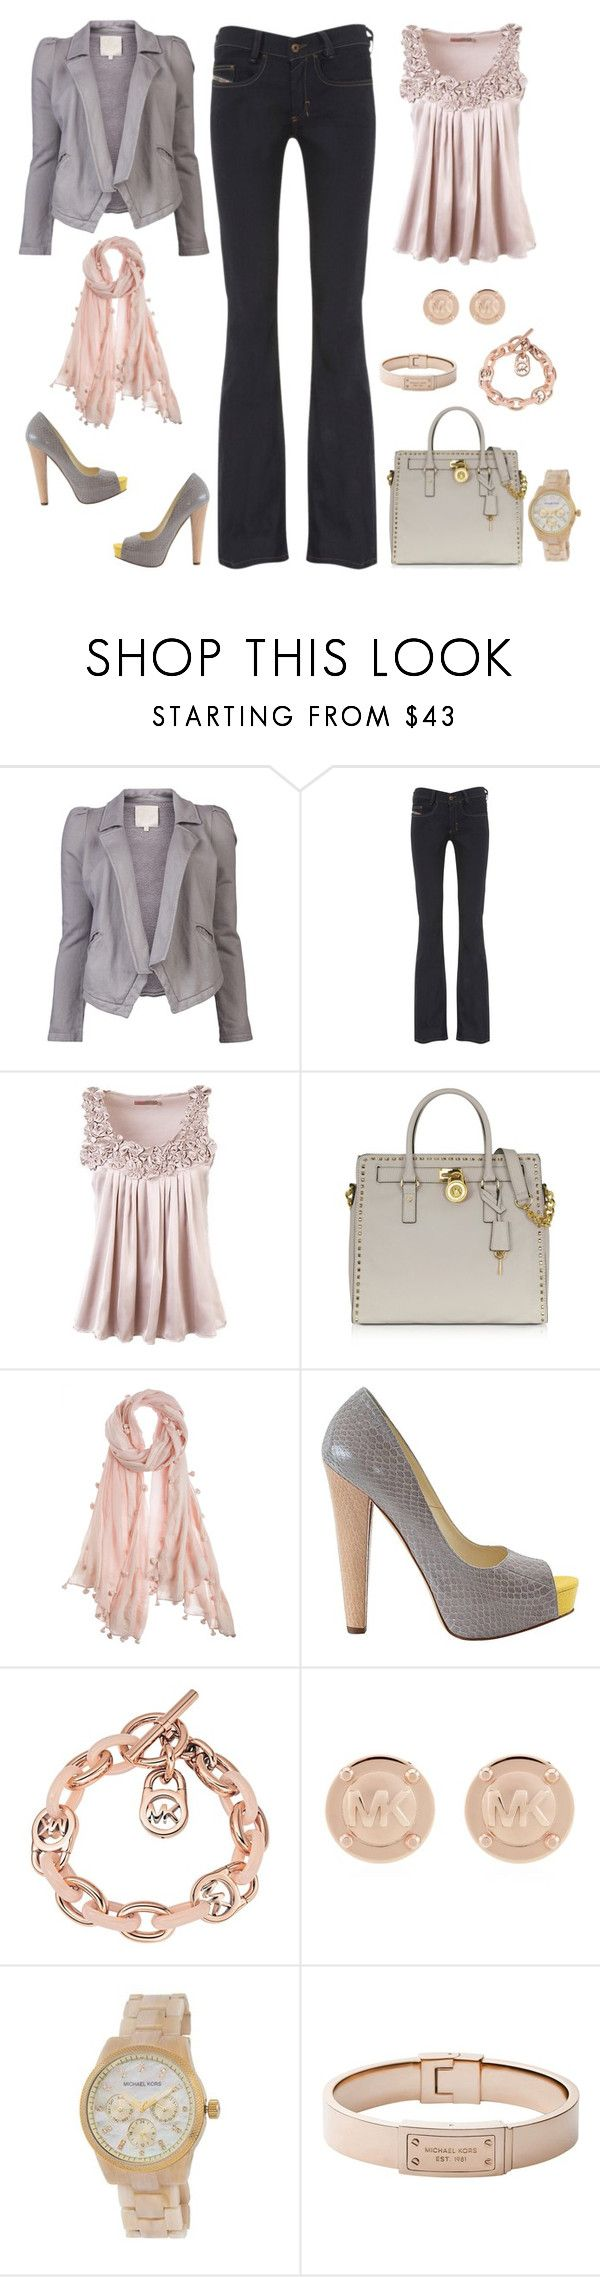 """Sans titre #18"" by carolinesaracosa77 on Polyvore featuring mode, Chaser, Diesel, Saint Tropez, Michael Kors, Chan Luu et Brian Atwood"